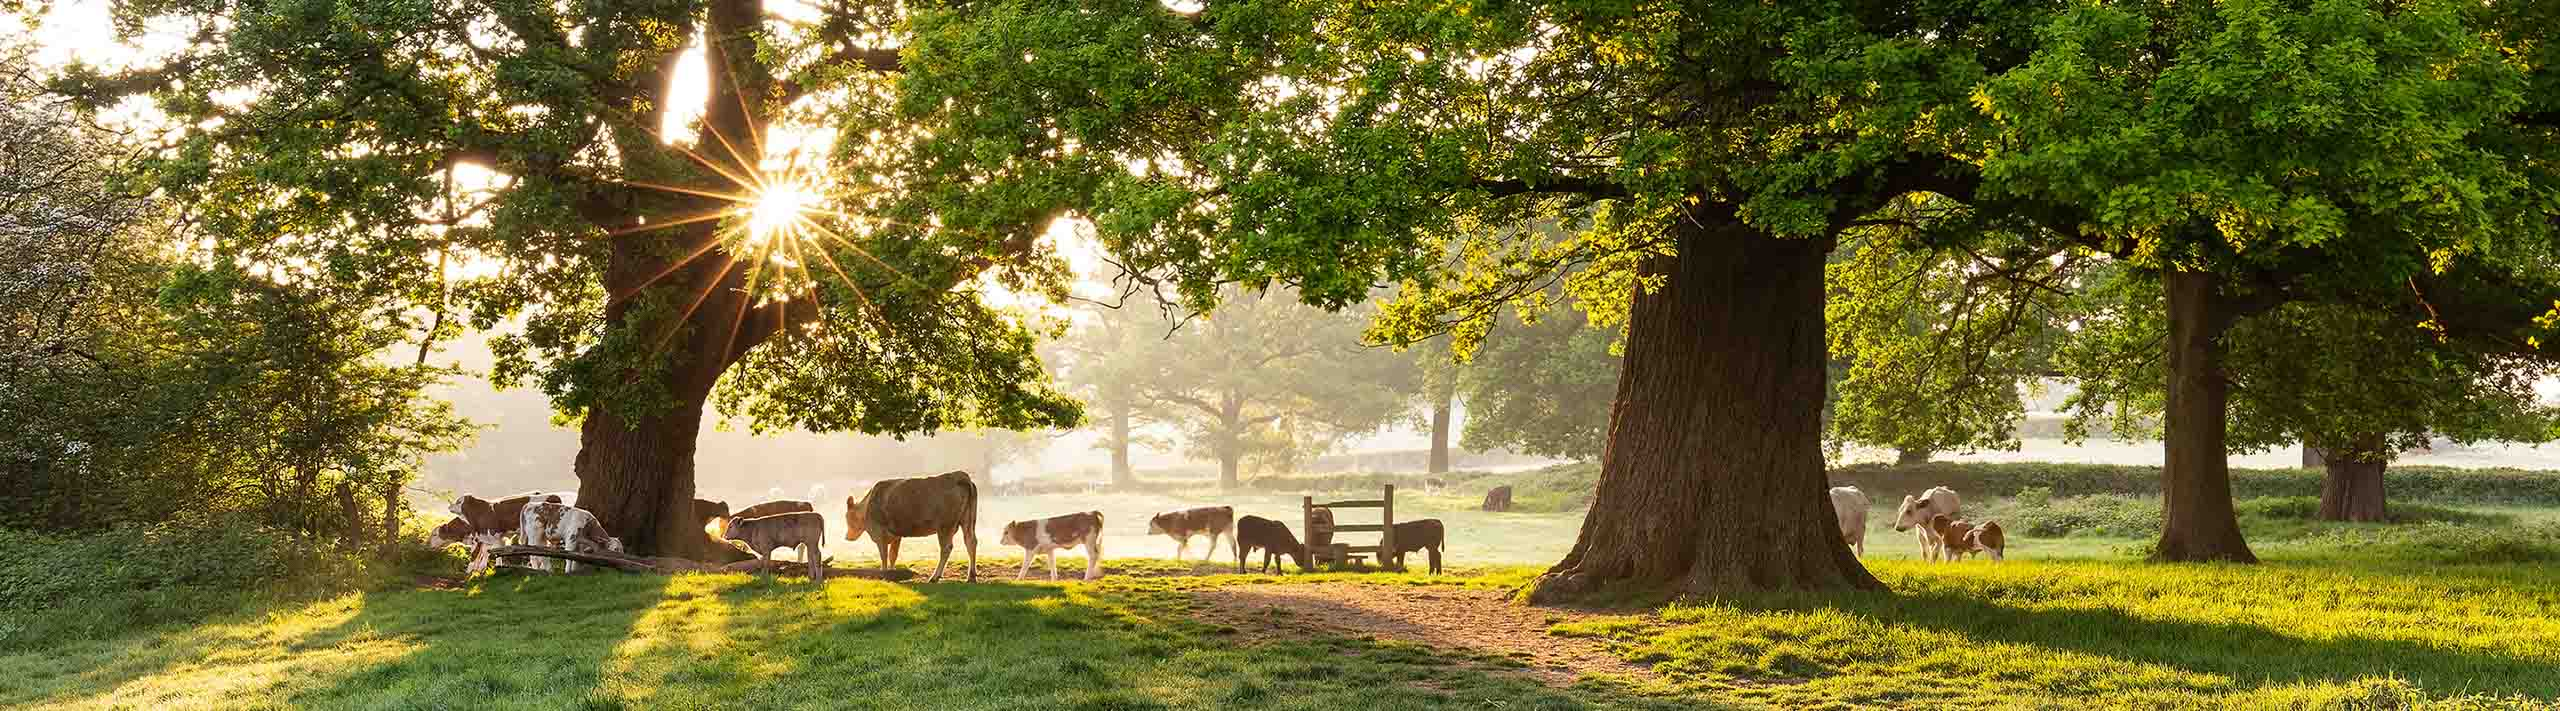 Landscape picture of cows under oak trees in the sun